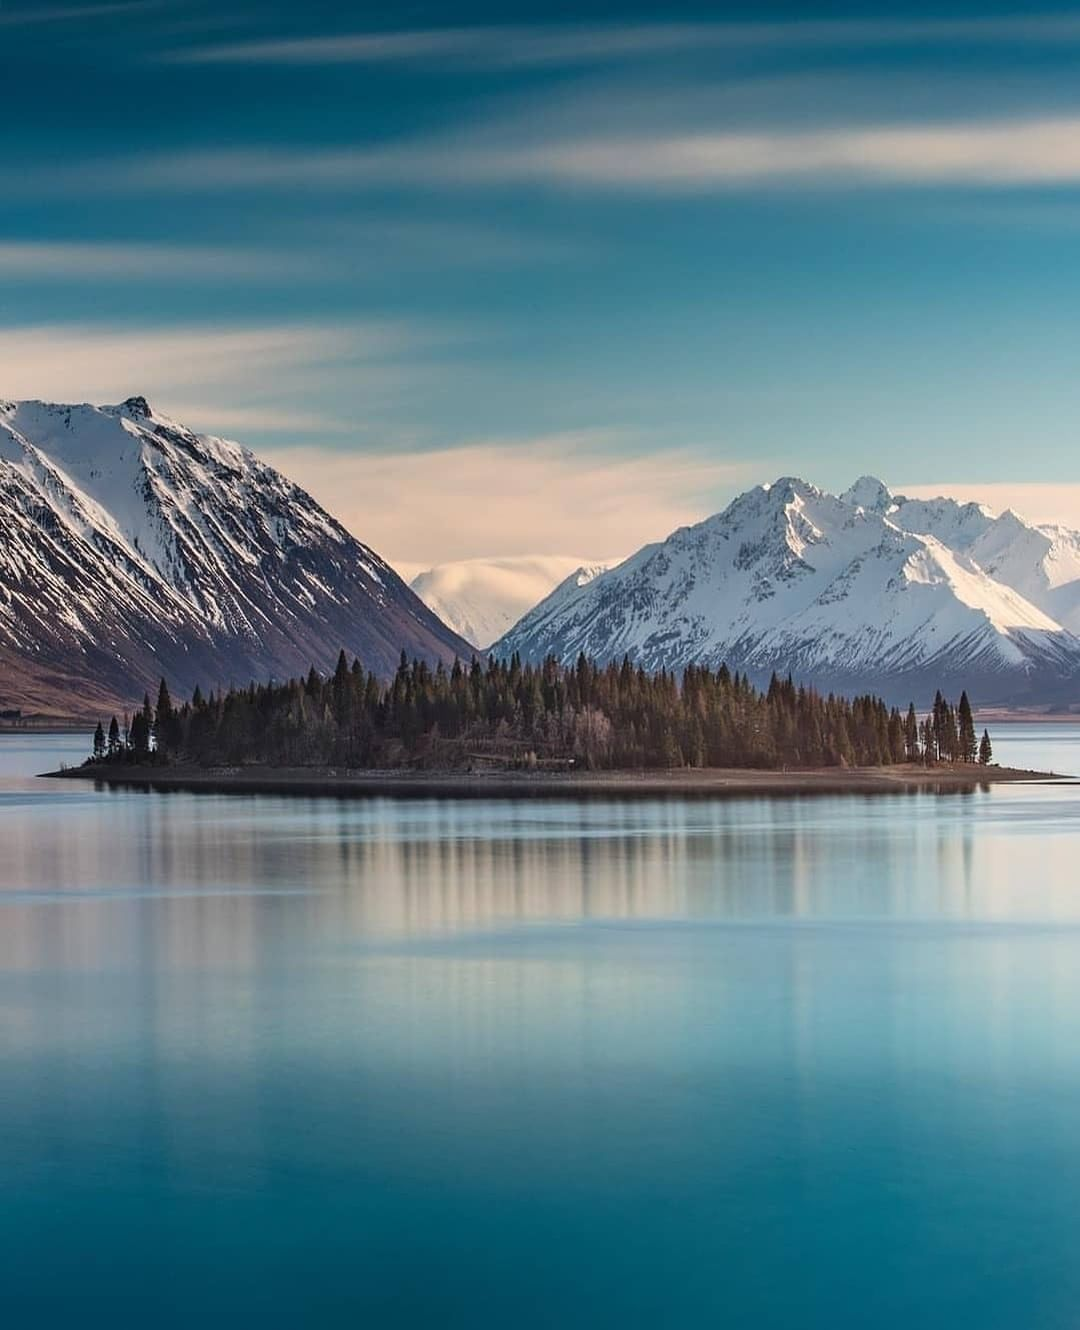 Mountain Island Is One Of Bill S Most Popular Paintings Stately Pines Stand On A Lonely Island In Landscape Paintings Canvas Photography Mountain Paintings